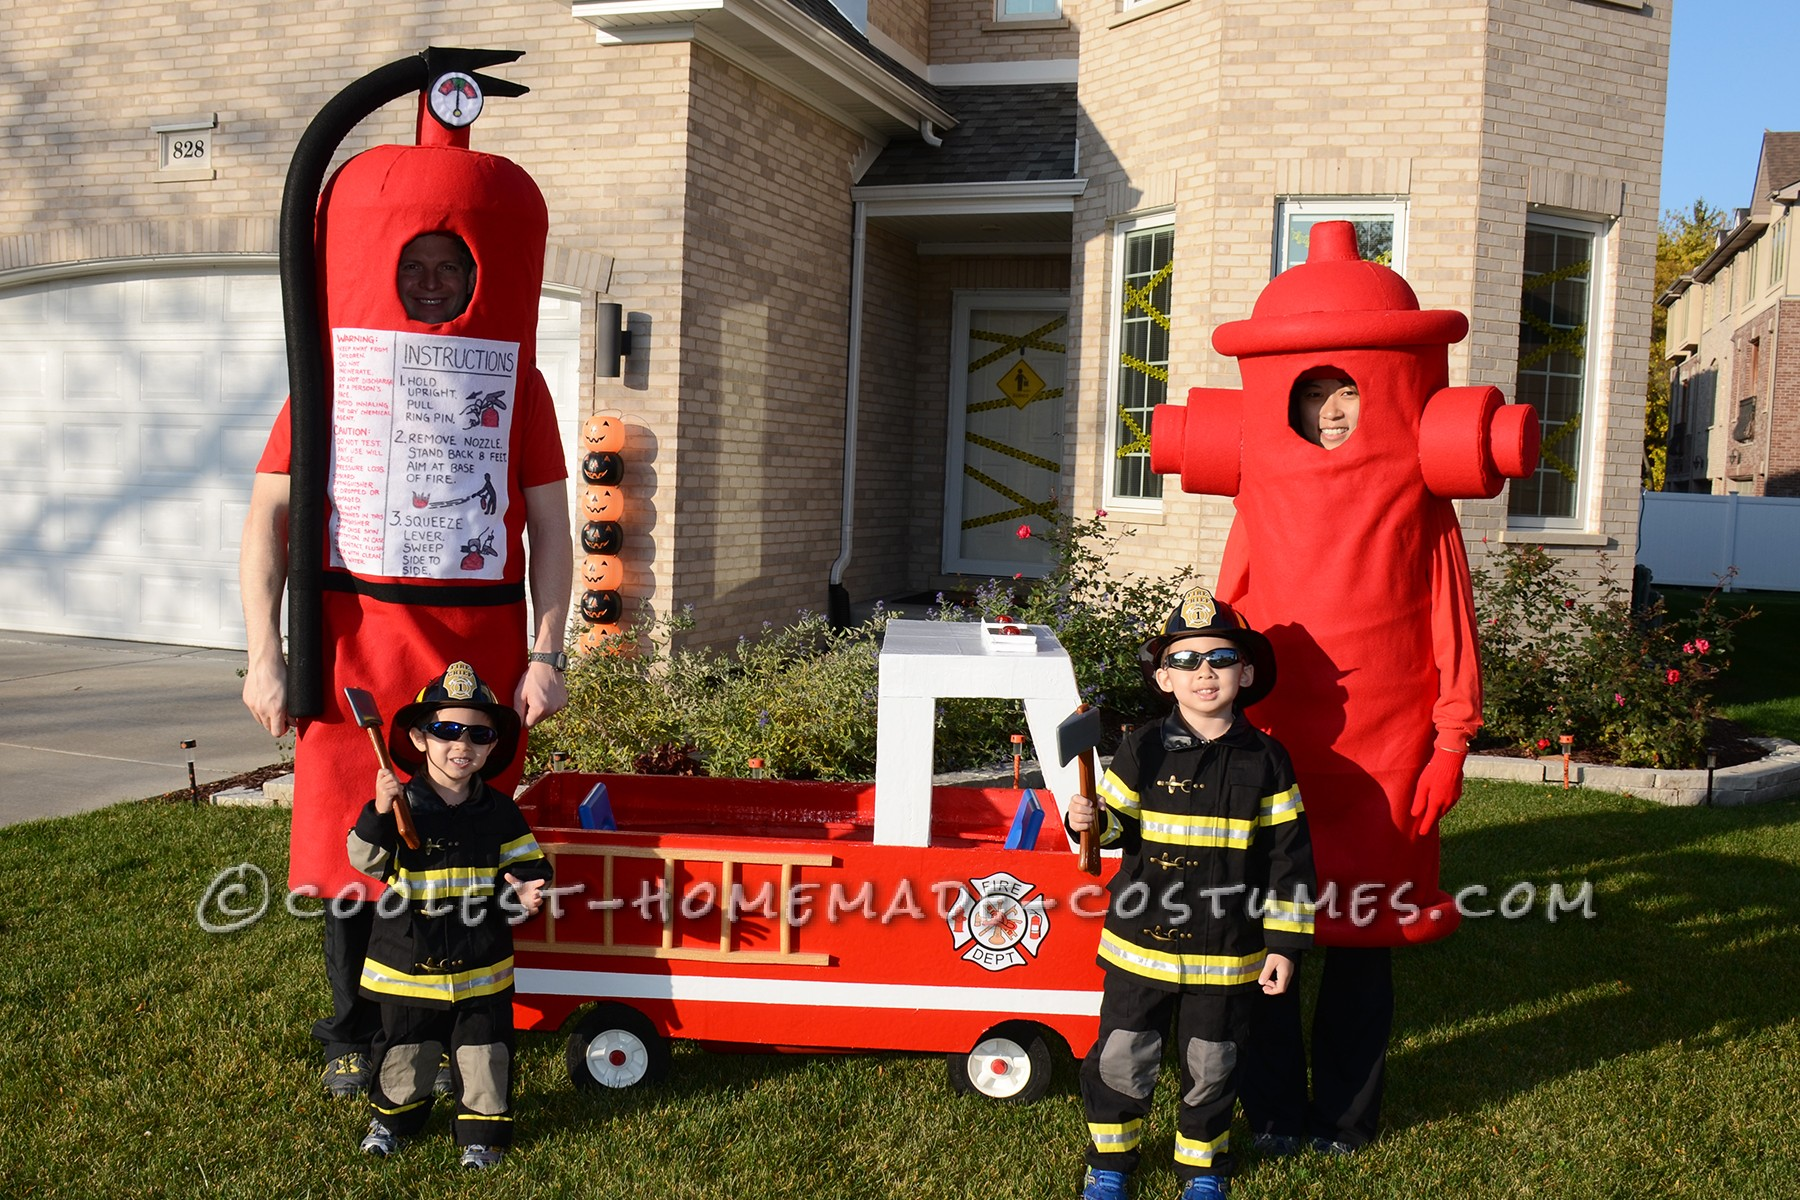 Coolest Fireman Family Costumes: Little Heroes with Big Hoses